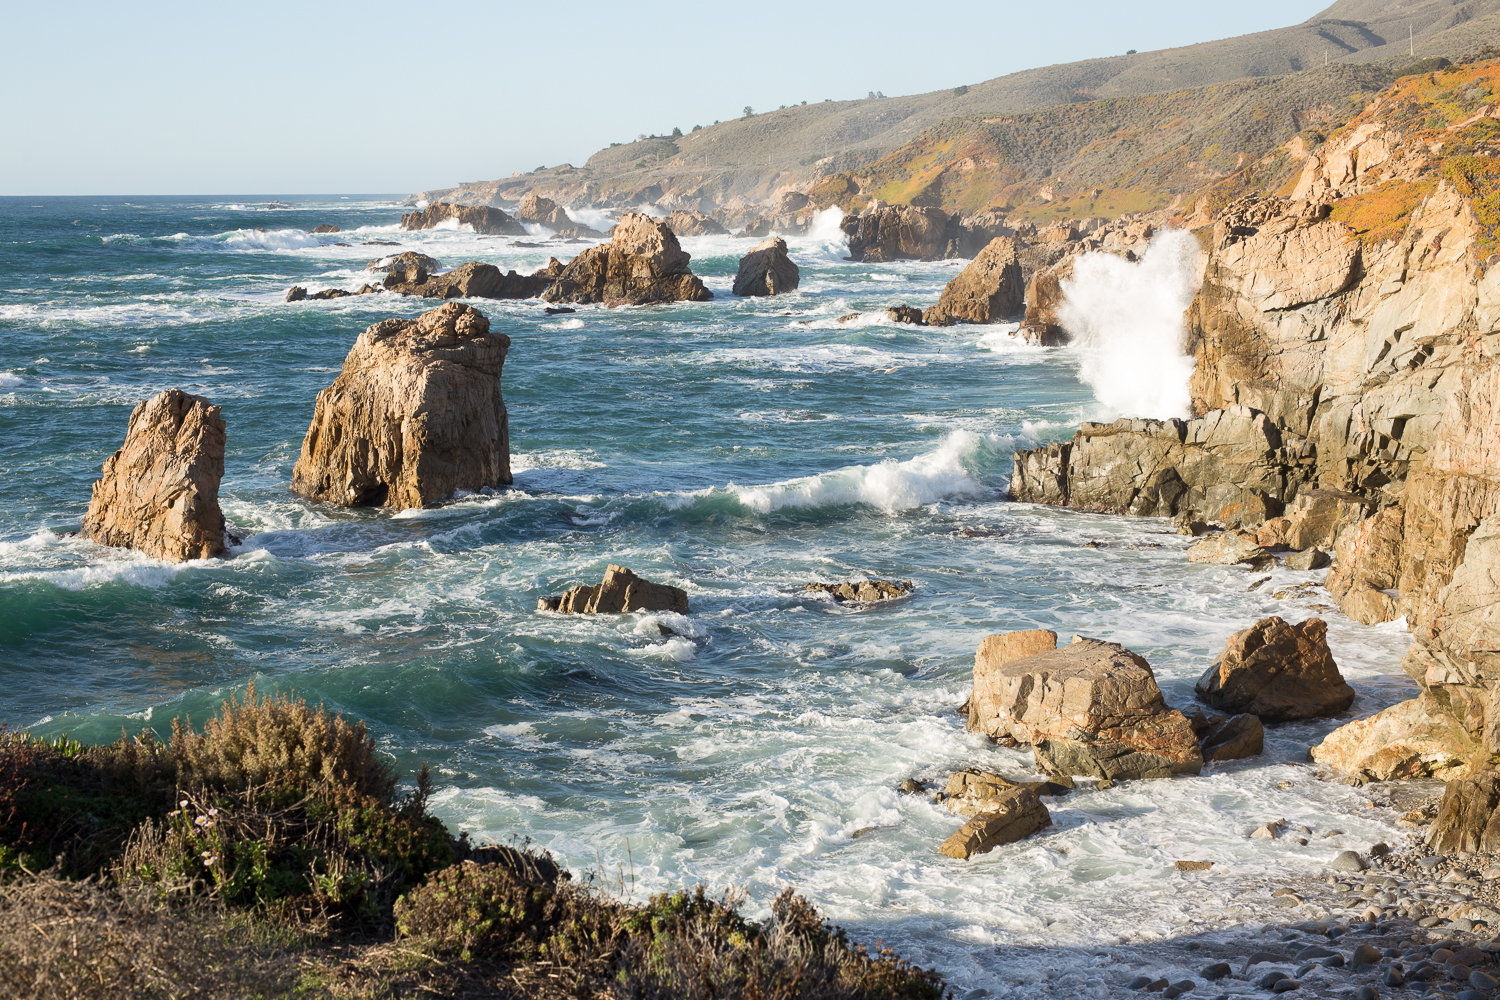 california-road-trip-route-1-katie-donnelly-photography-19.jpg